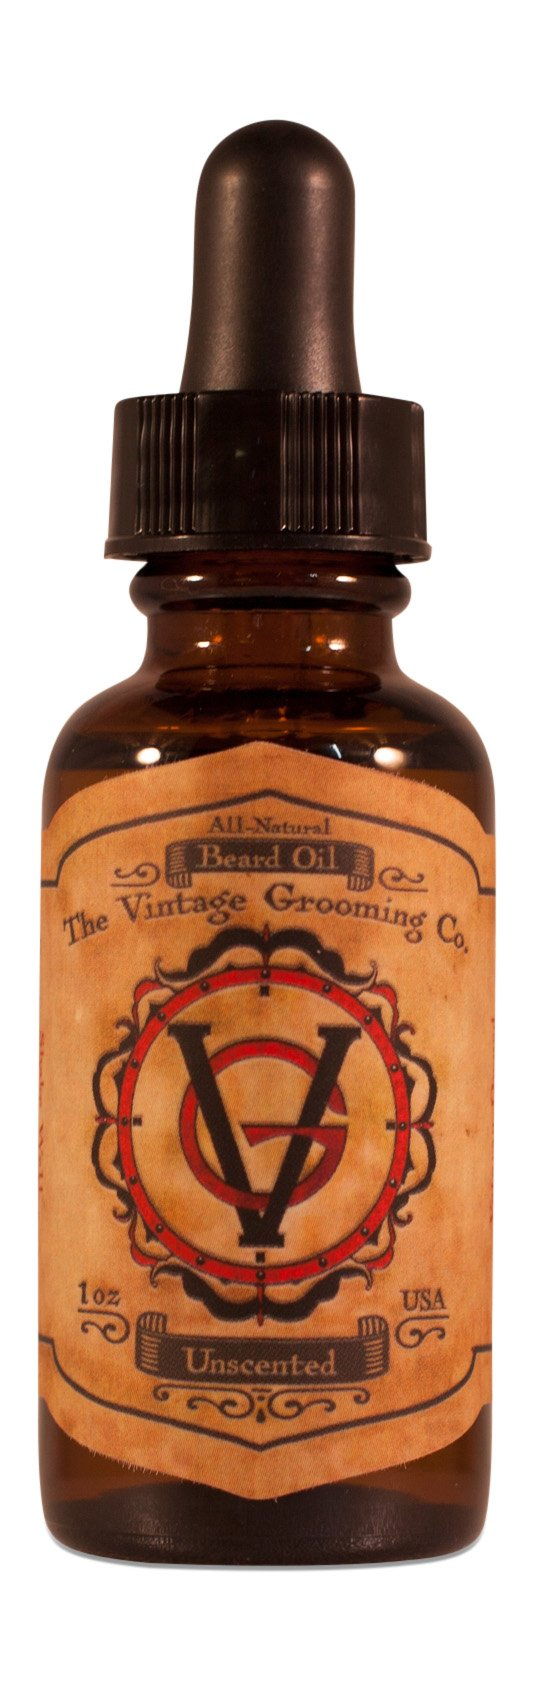 Unscented Beard Oil (1oz) All-Natural